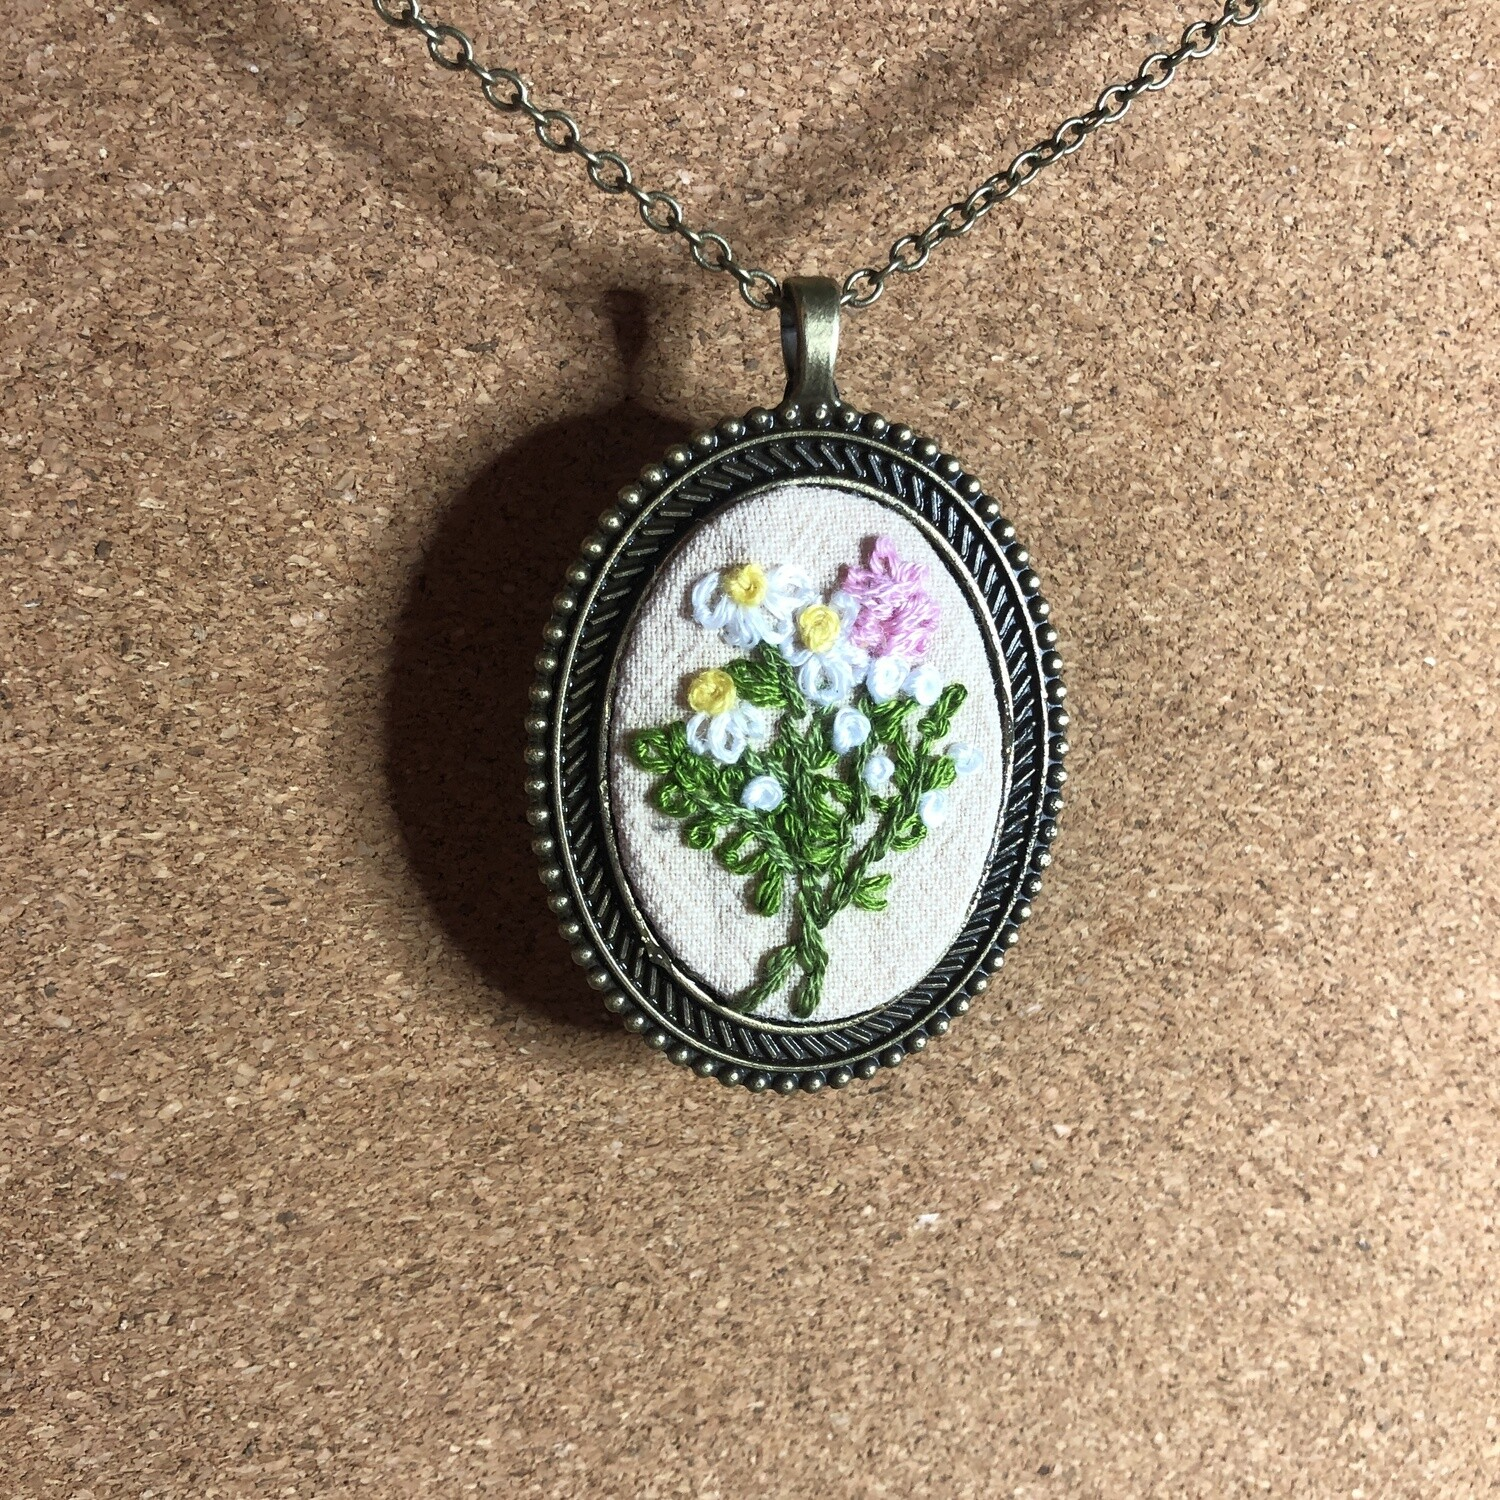 Spring Flower Necklace - Daisy Hyacinth Floral - Hand Embroidered Pendant